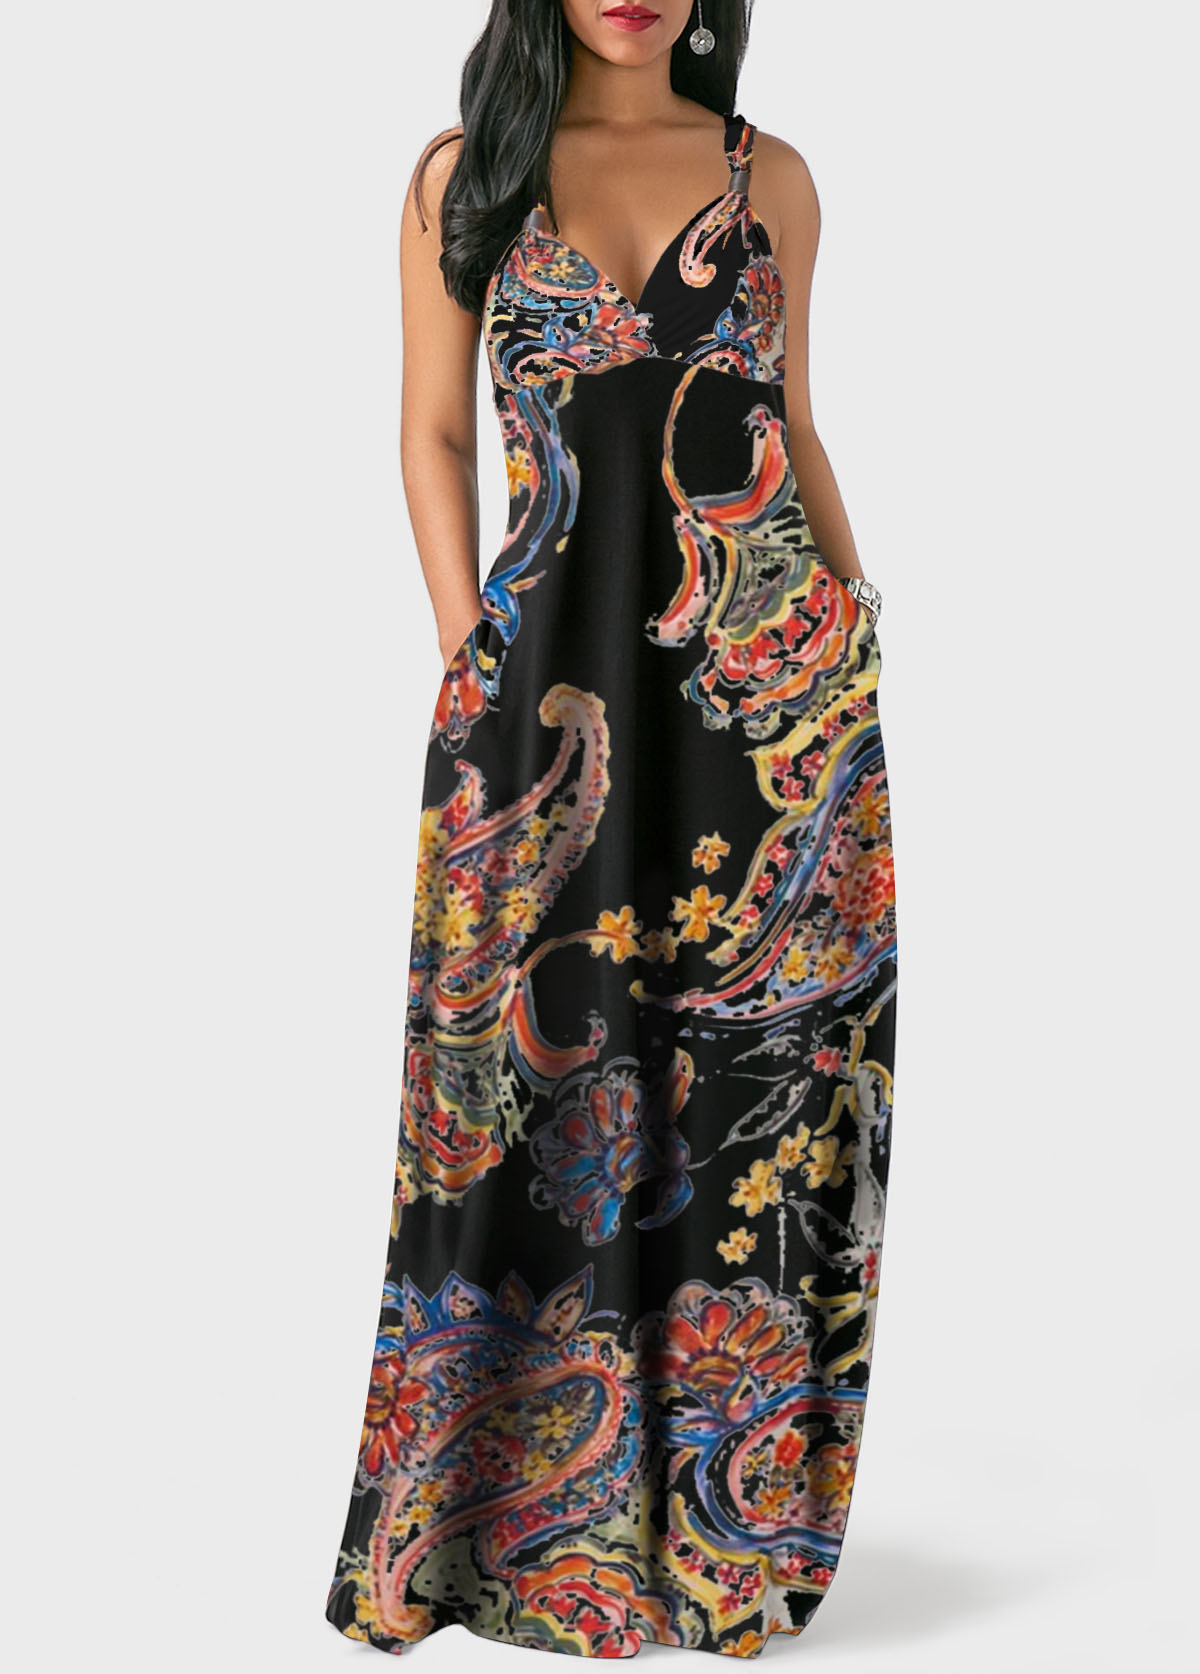 Spaghetti Strap Bohemian Print Pocket Dress